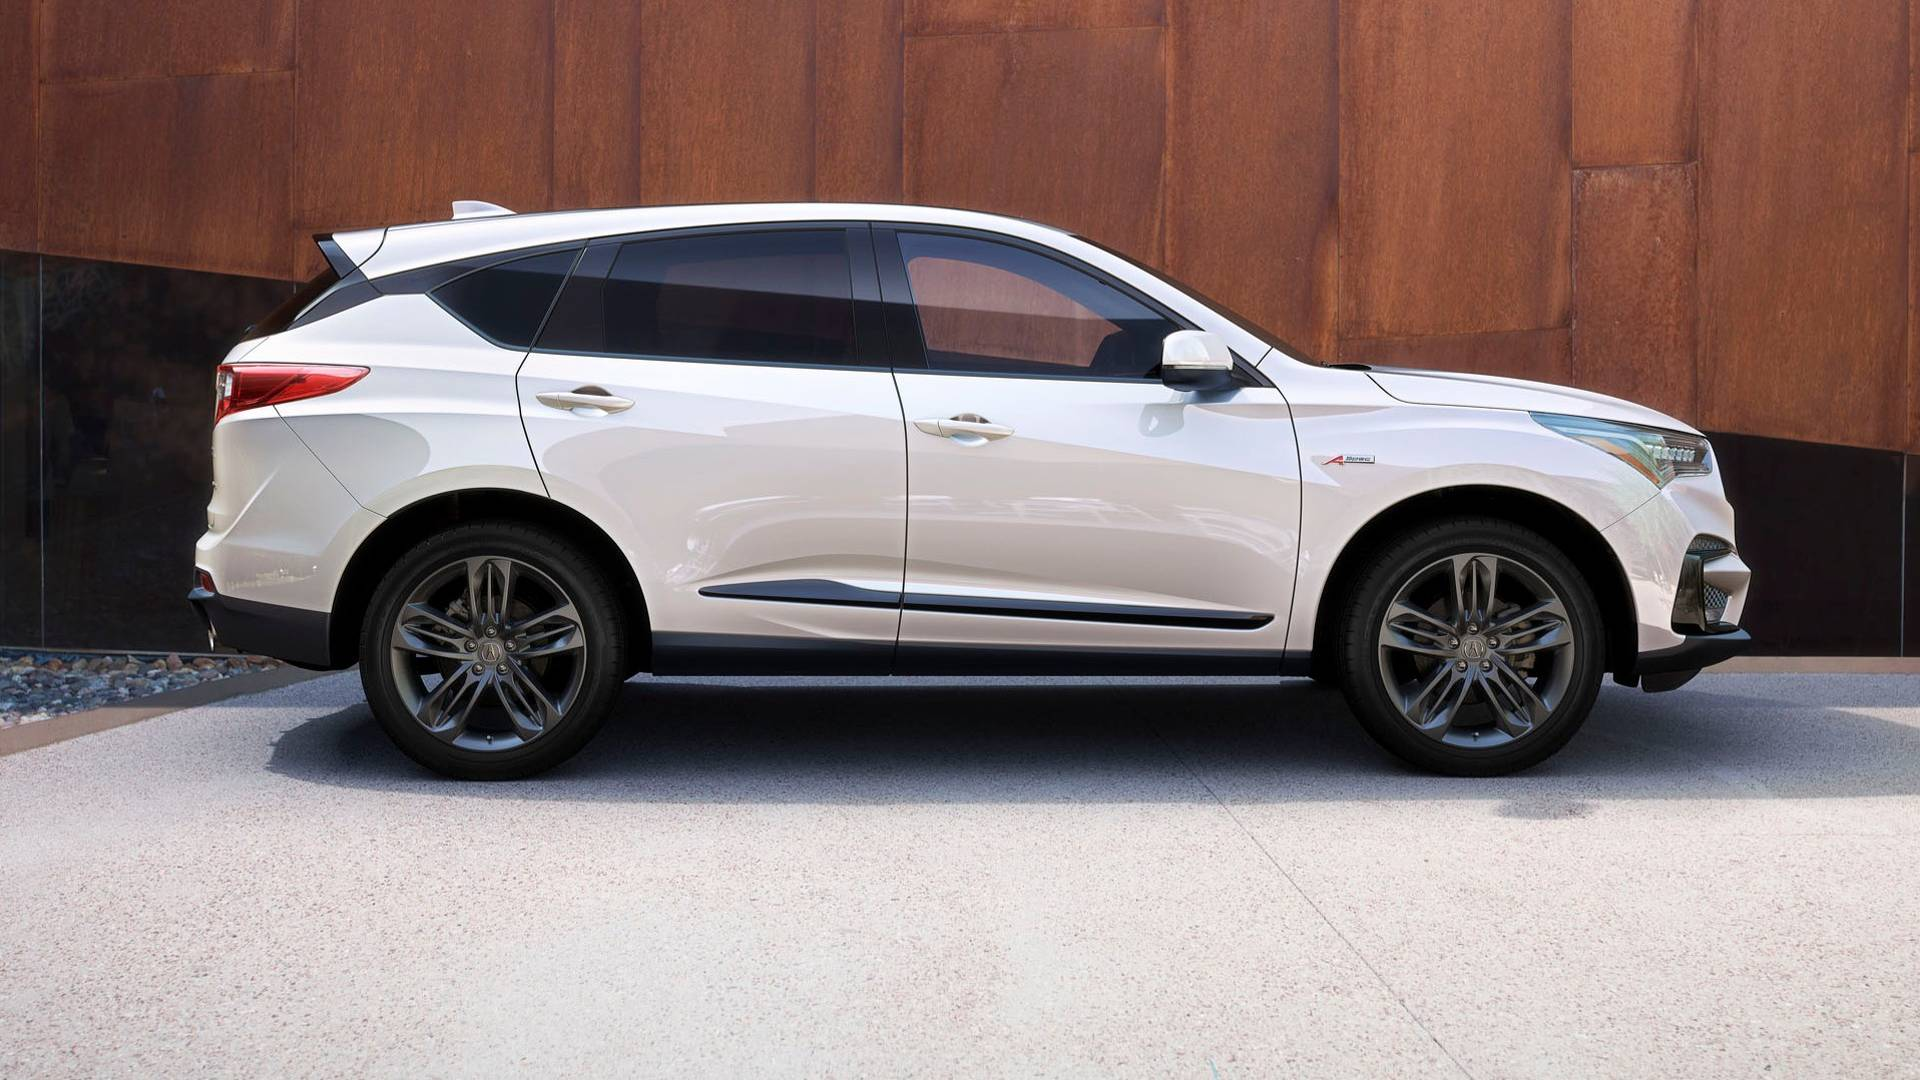 2020 Acura Rdx Adds Platinum White Exterior Color Autoevolution